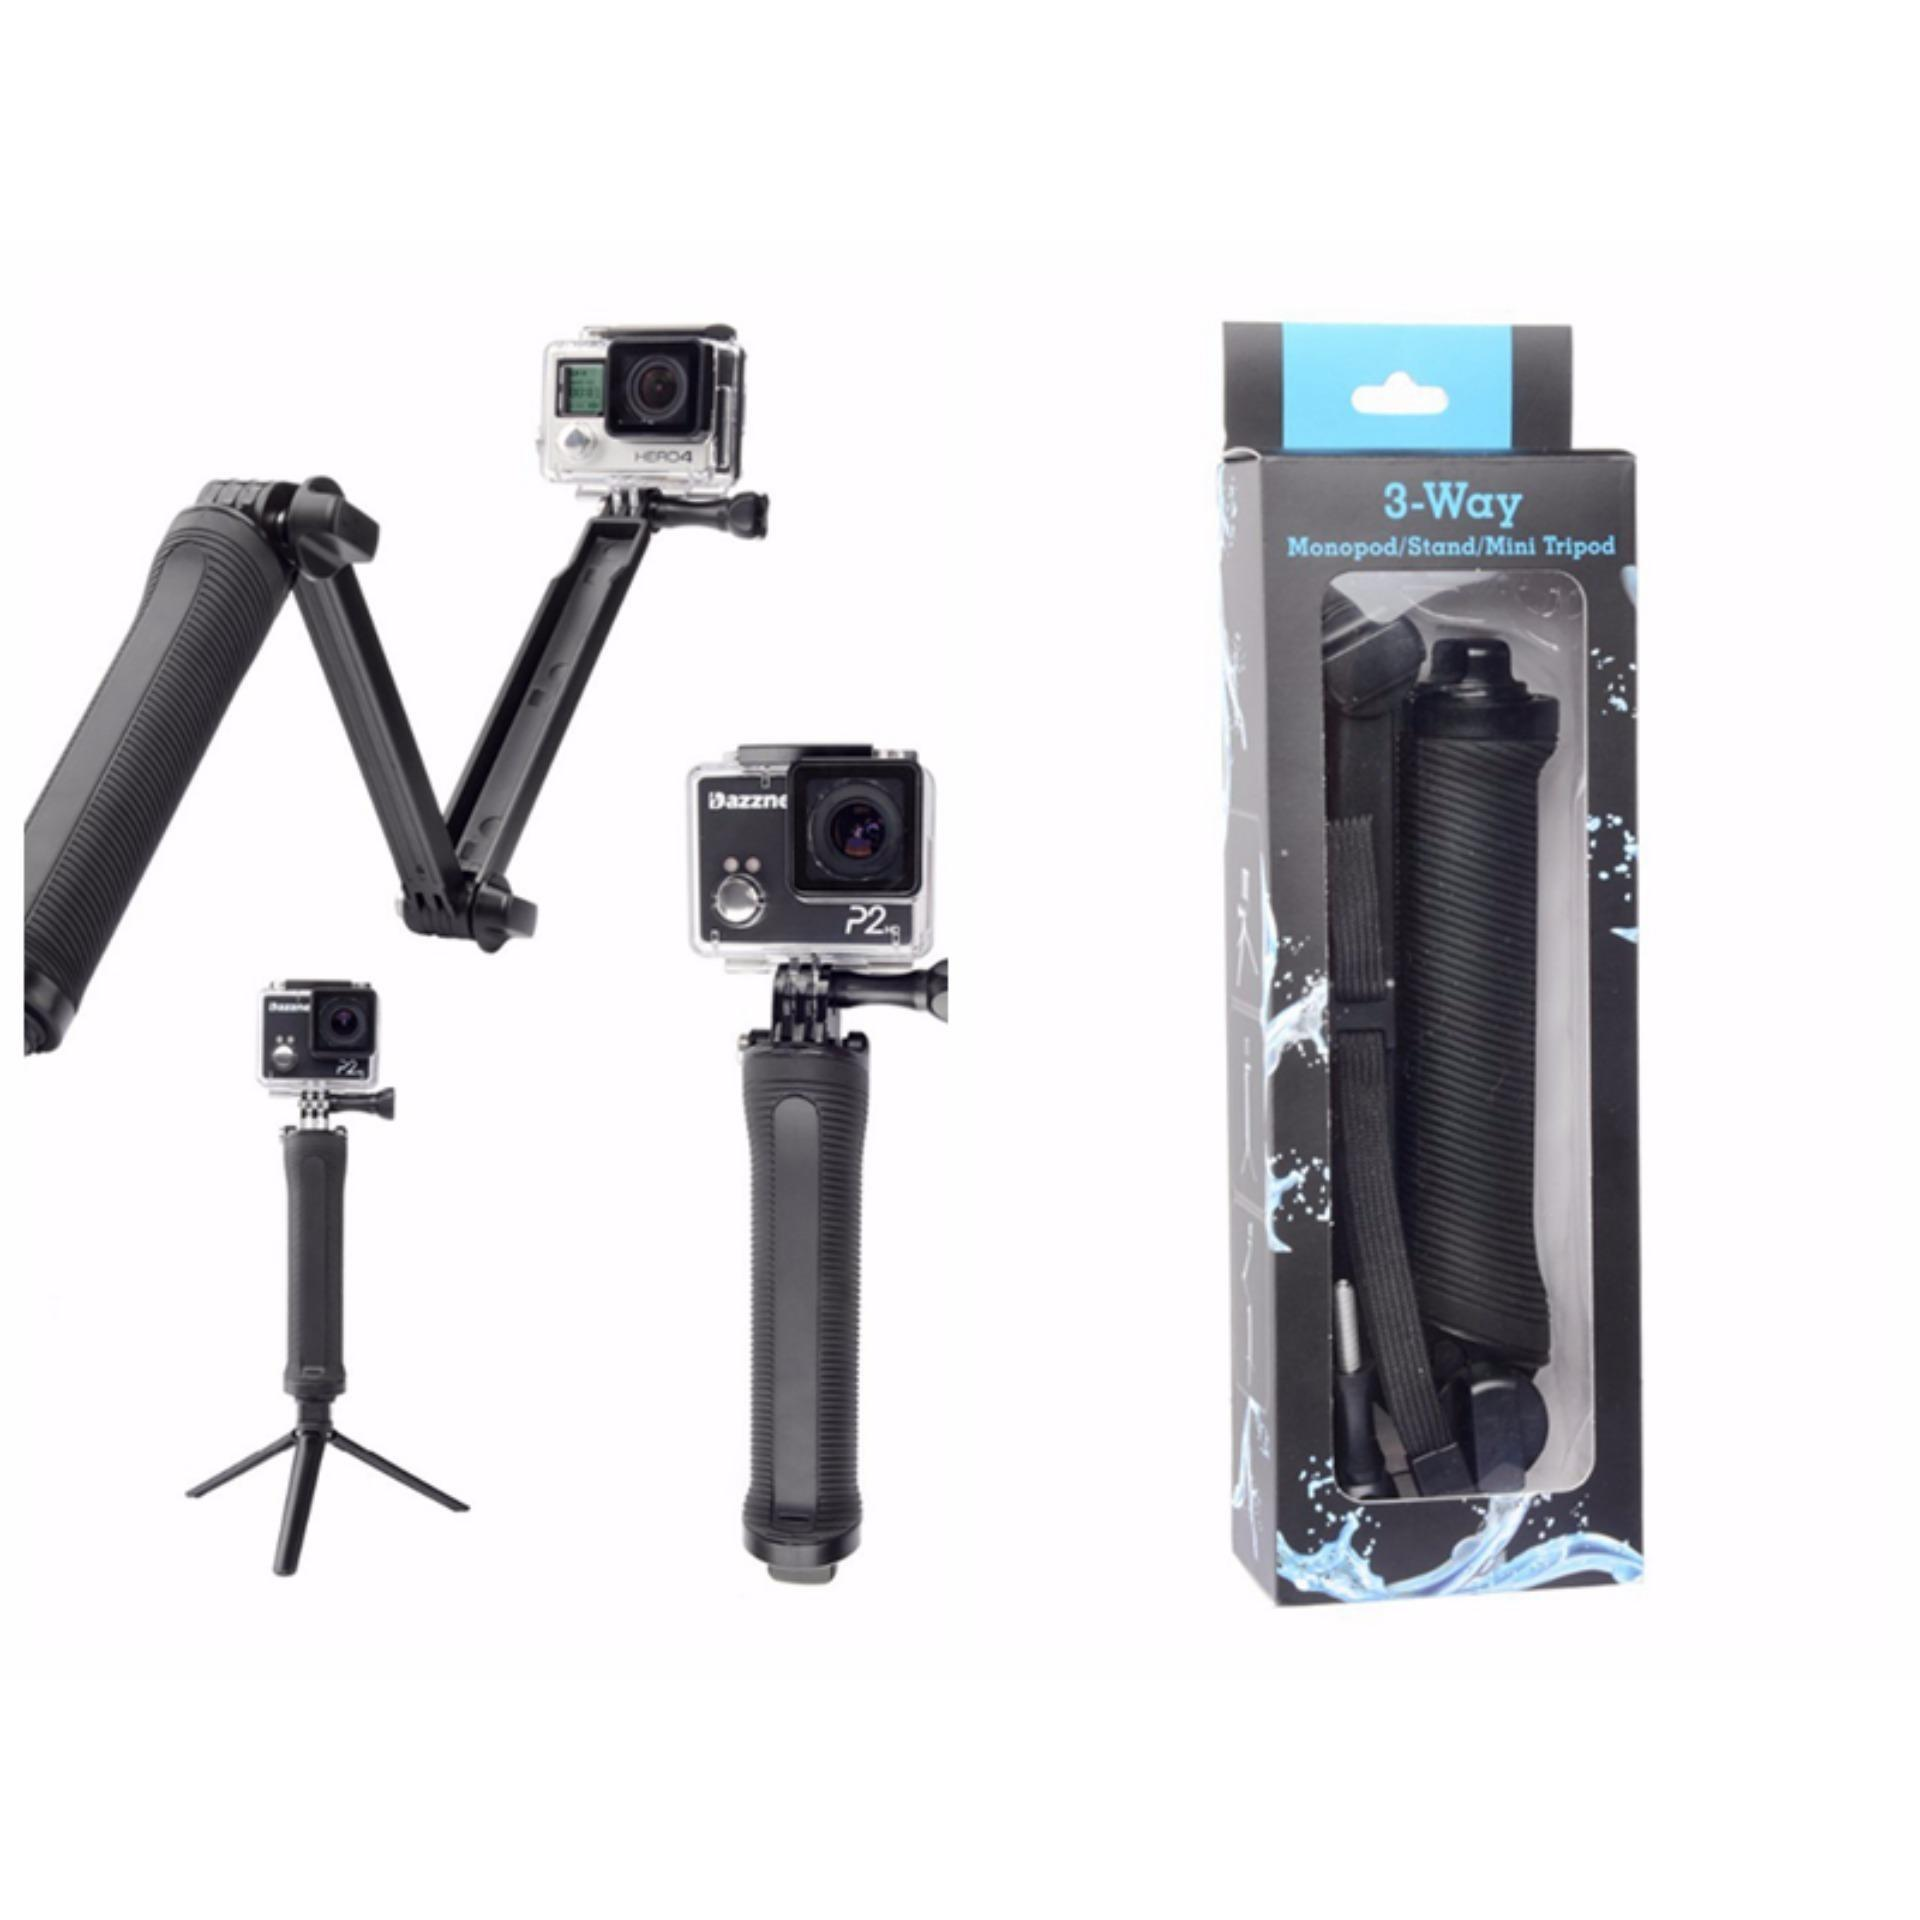 3128d3ec07 GoPro Accessories 20cm Collapsible 3 Way Monopod Mount Camera for Gopro  Hero 4 2 3 3